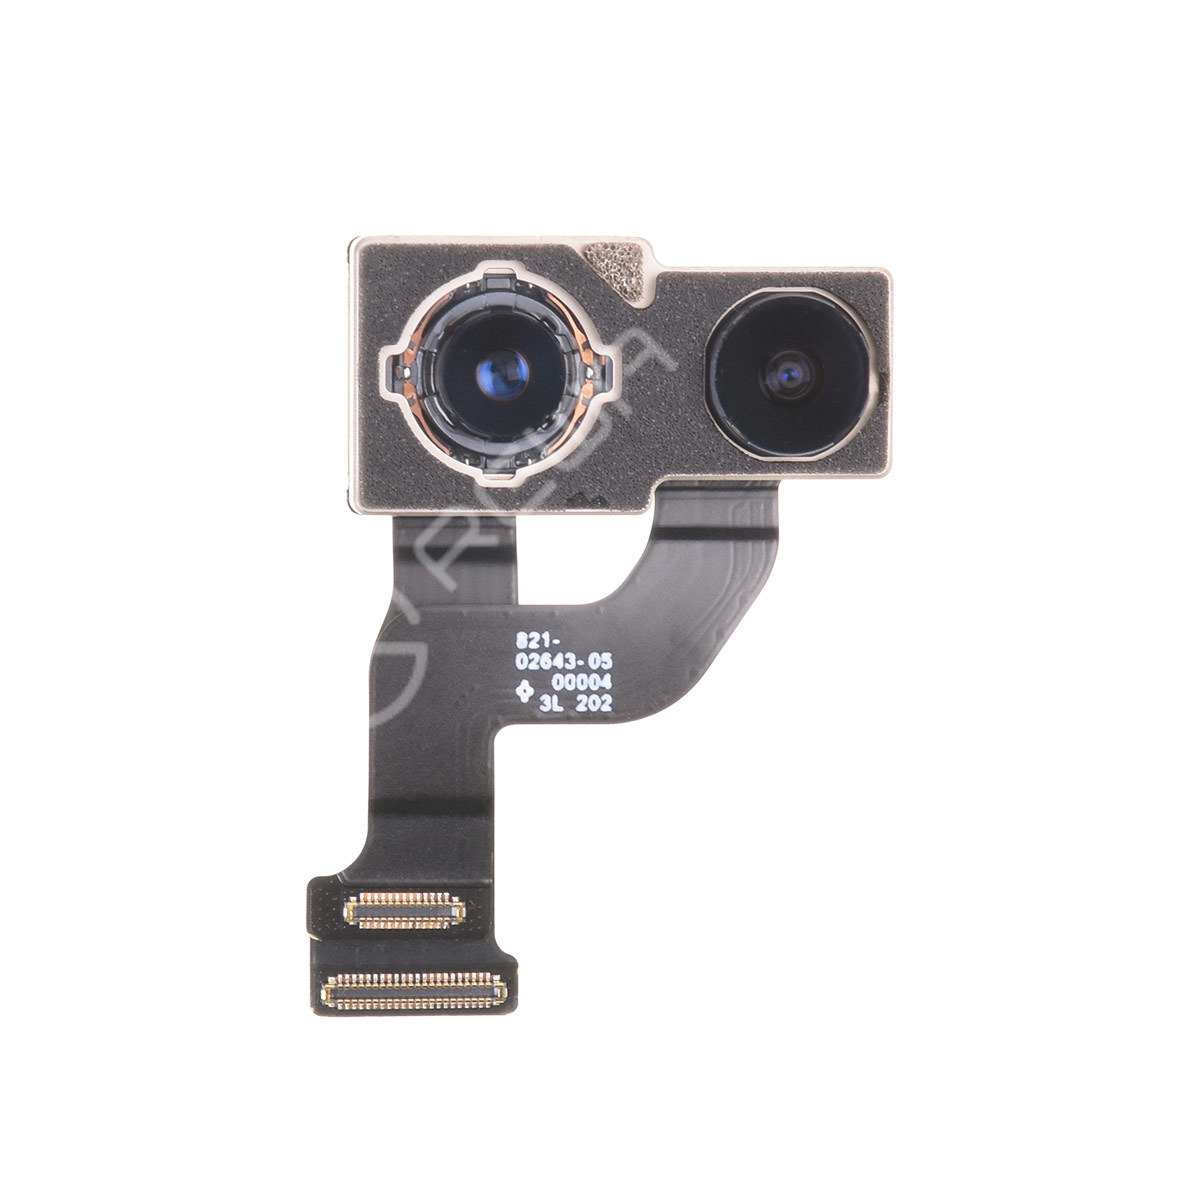 For Apple iPhone 12 Rear Facing Camera Replacement